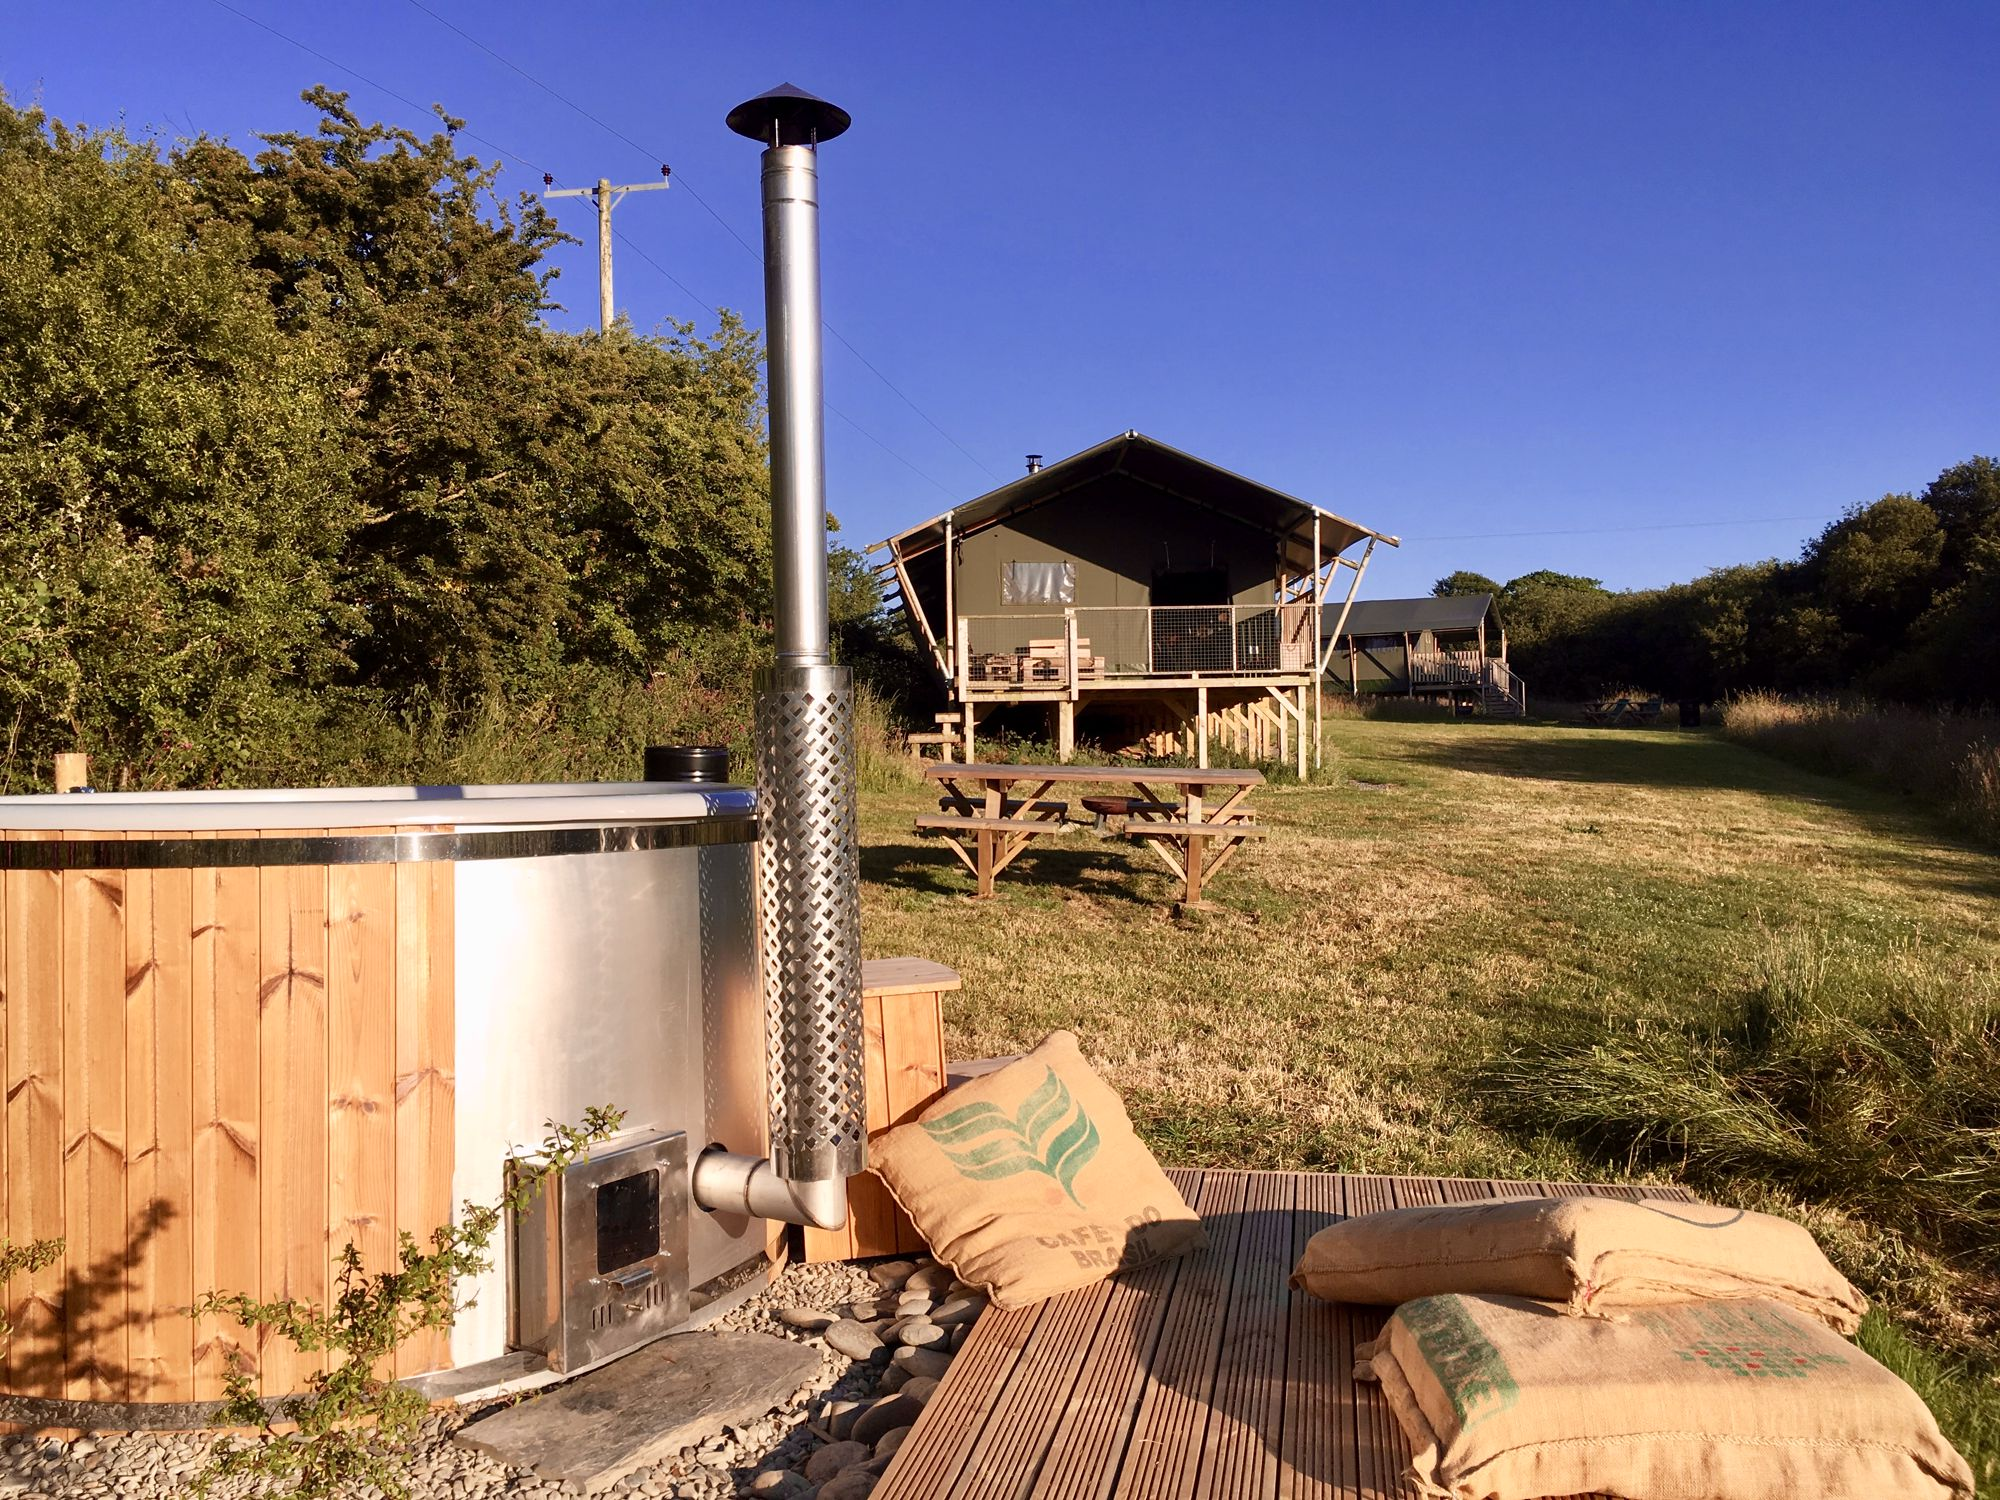 Glamping in Aberporth holidays at Cool Places